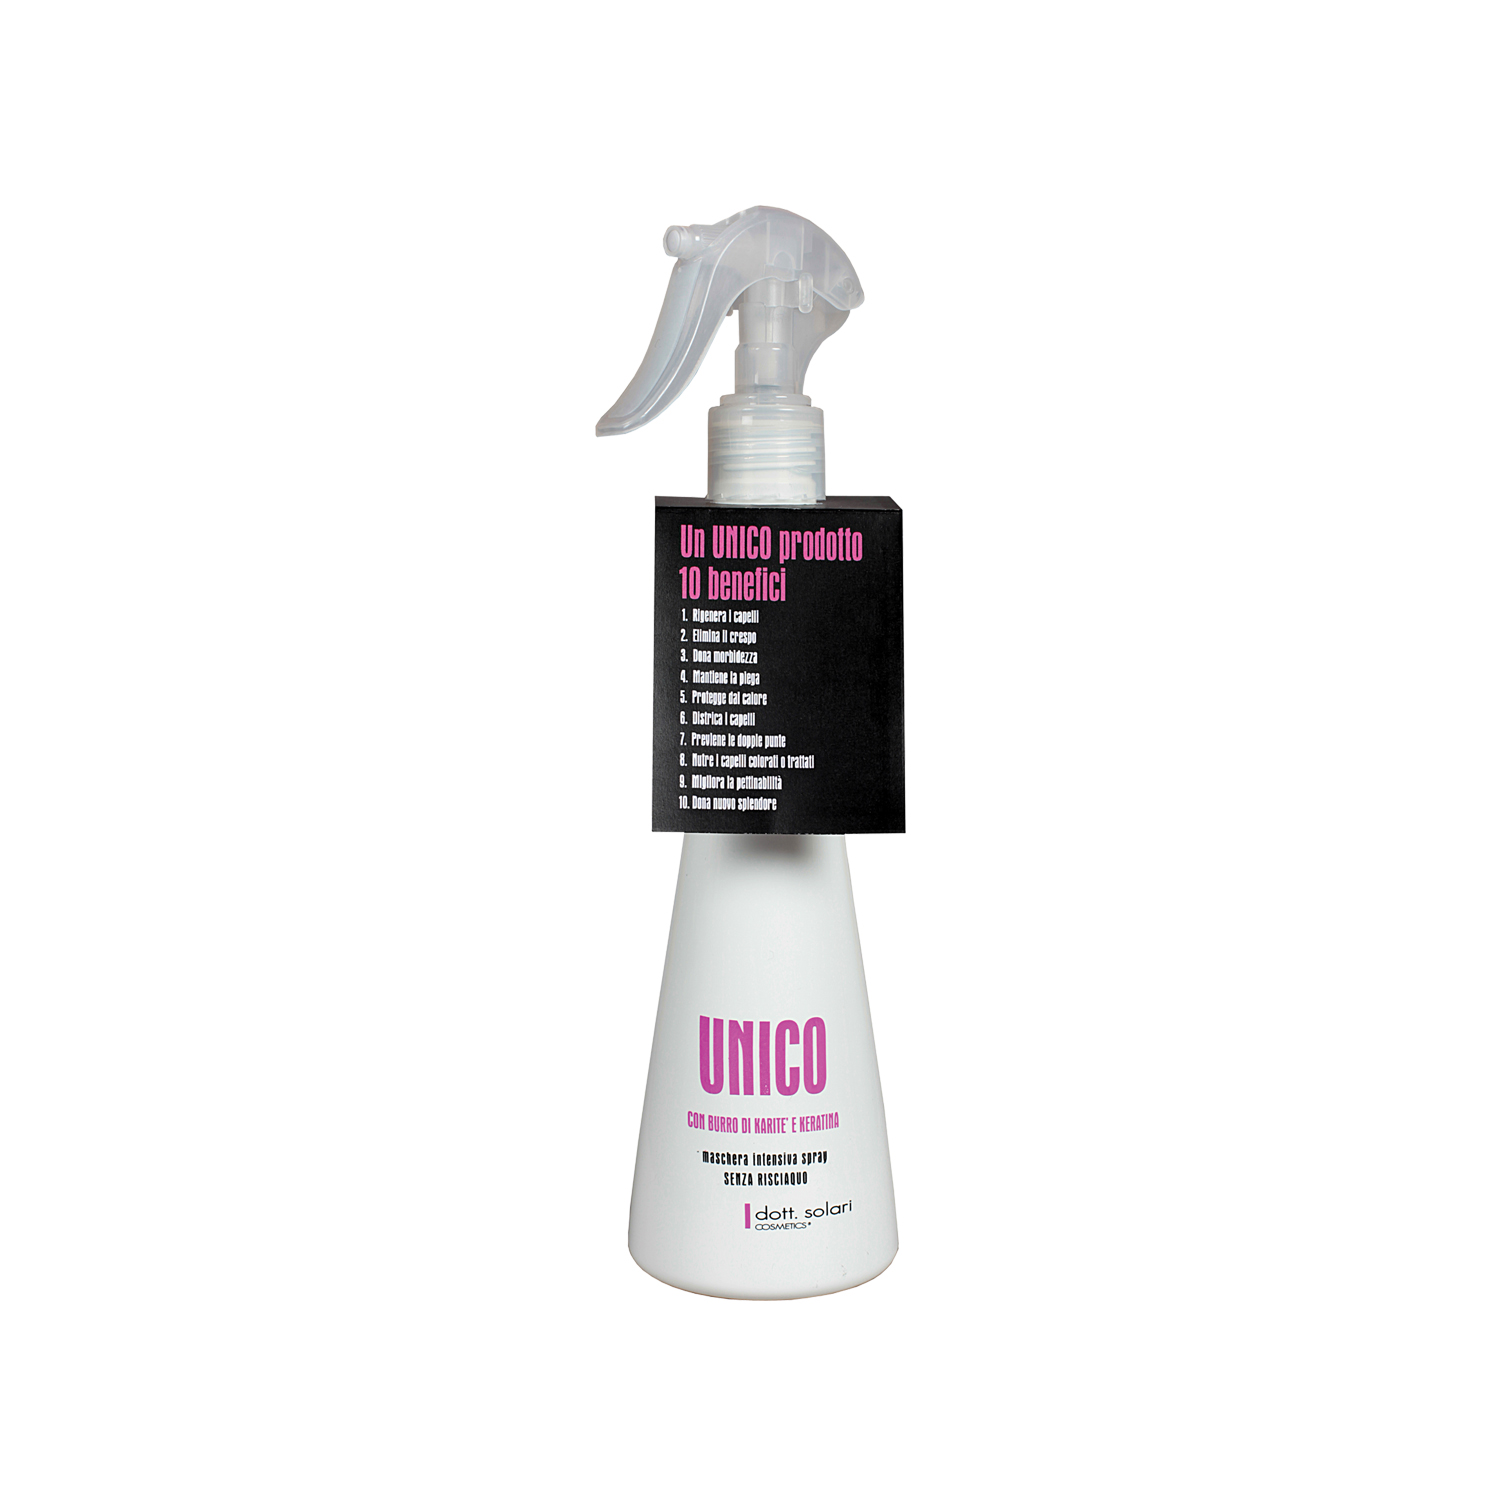 UNICO INTENSIVE SPRAY HAIR MASK 10 IN 1 -200ml